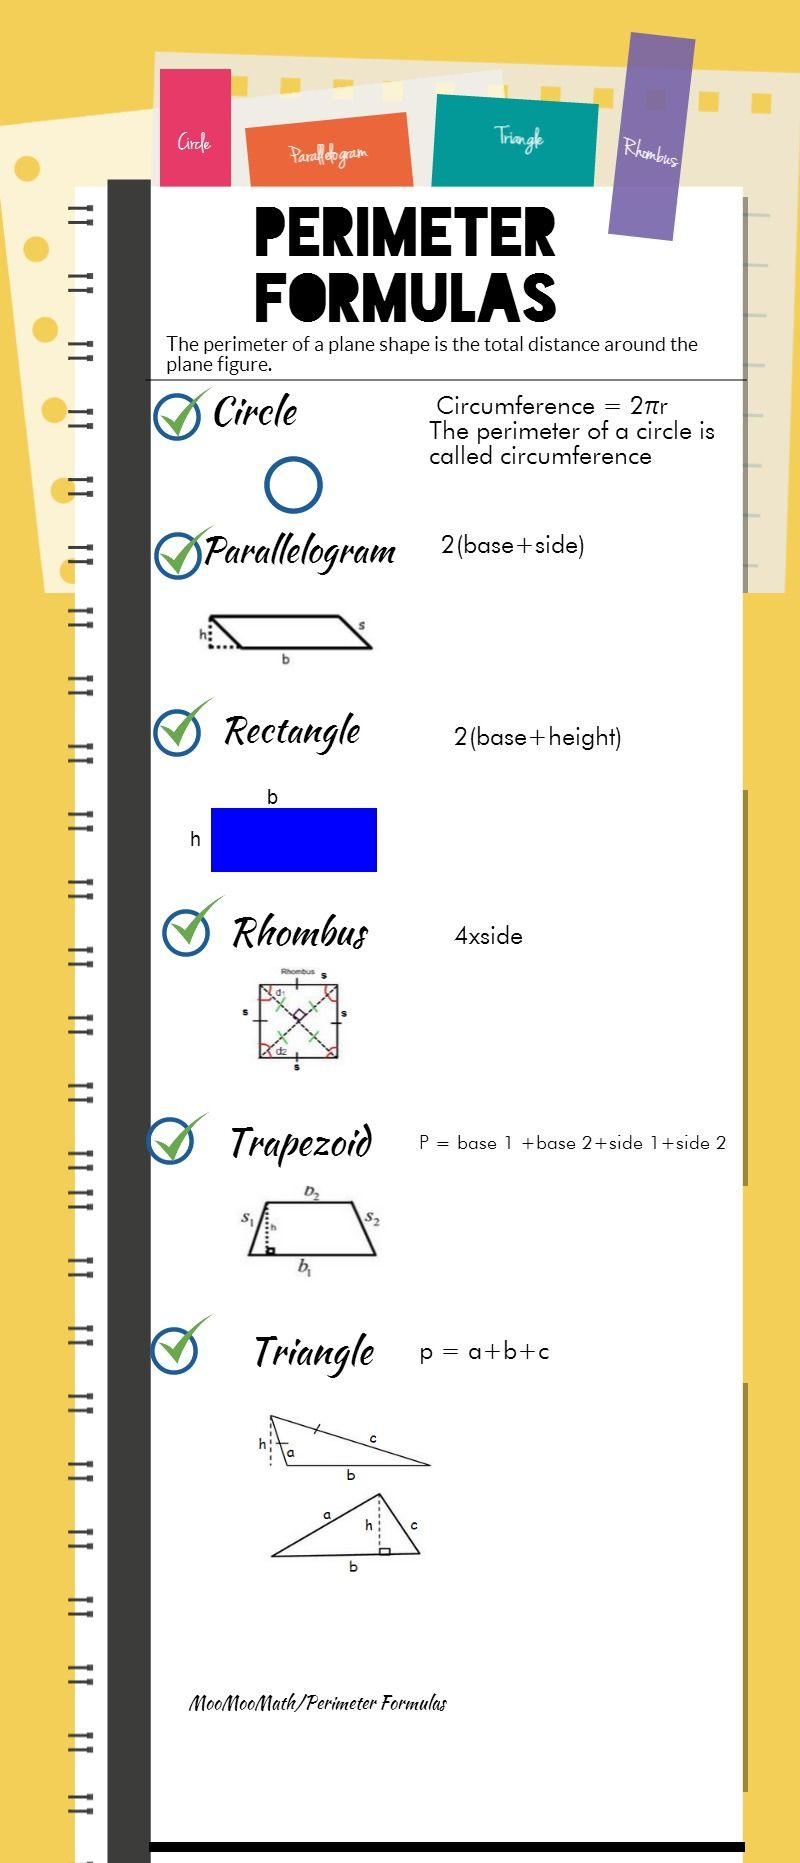 worksheet Perimeter Formula perimeter formulas plane shapes quick reference infographic math infographic